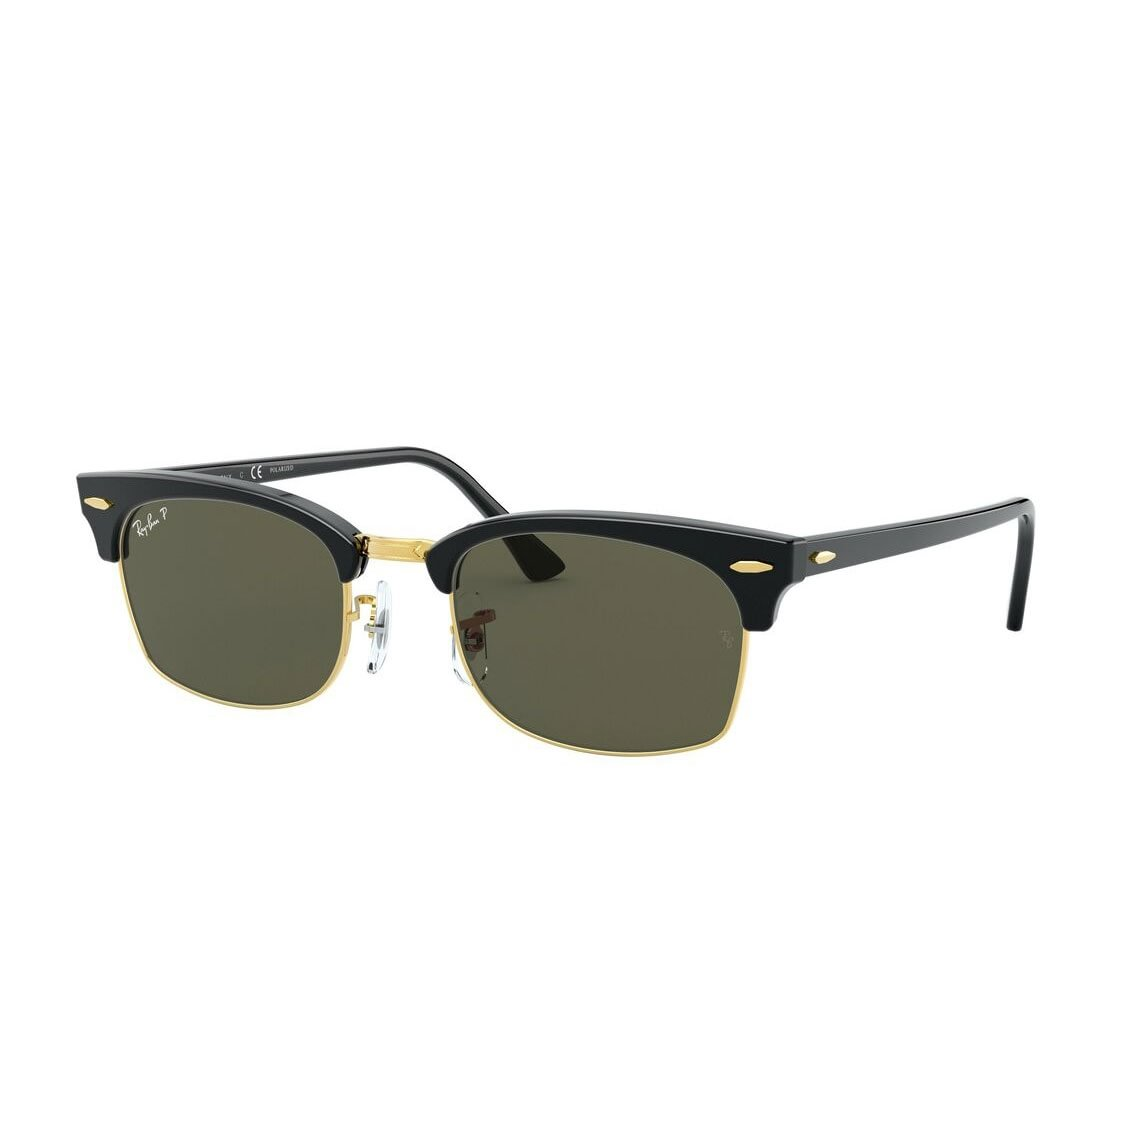 Ray-Ban Clubmaster Square RB3916 130358 5221